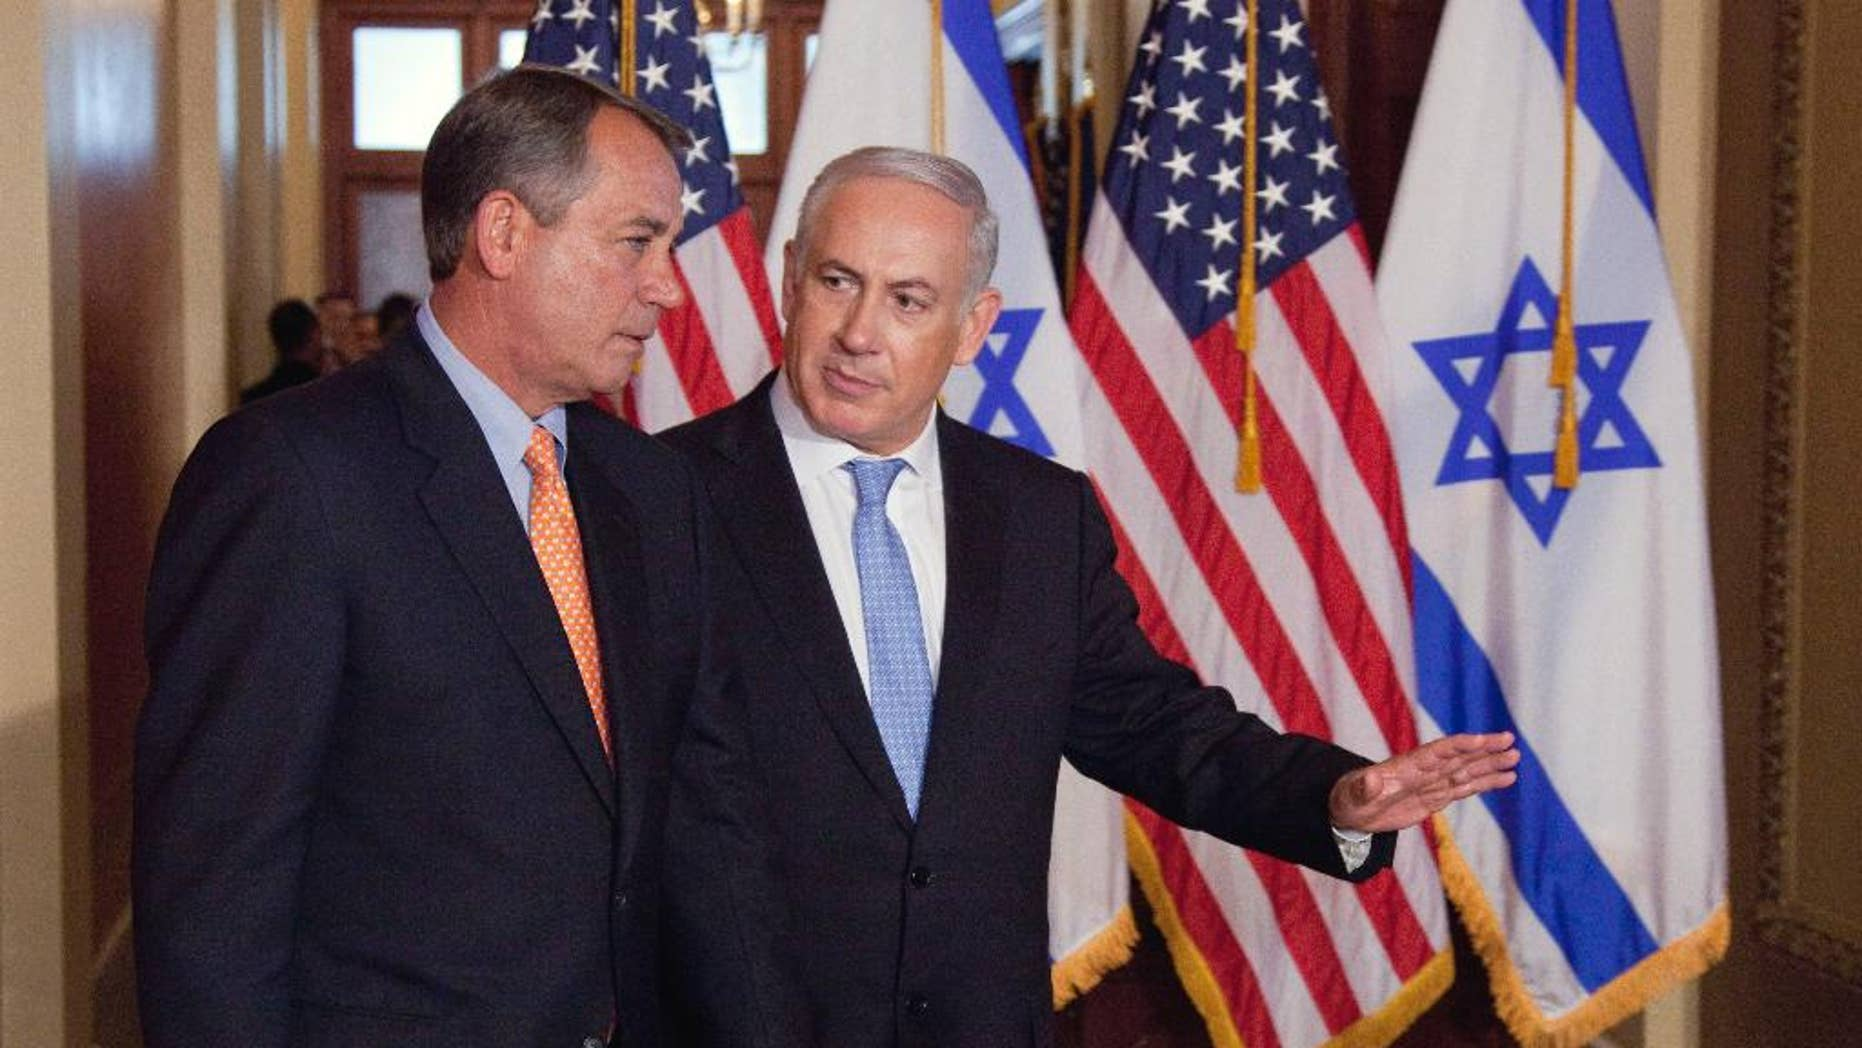 FILE - In this May 24, 2011 file photo, Israeli Prime Minister Benjamin Netanyahu walks with House Speaker  John Boehner of Ohio to make a statement on Capitol Hill in Washington. Boehner has invited Netanyahu to address Congress about Iran. (AP Photo/Evan Vucci, File)